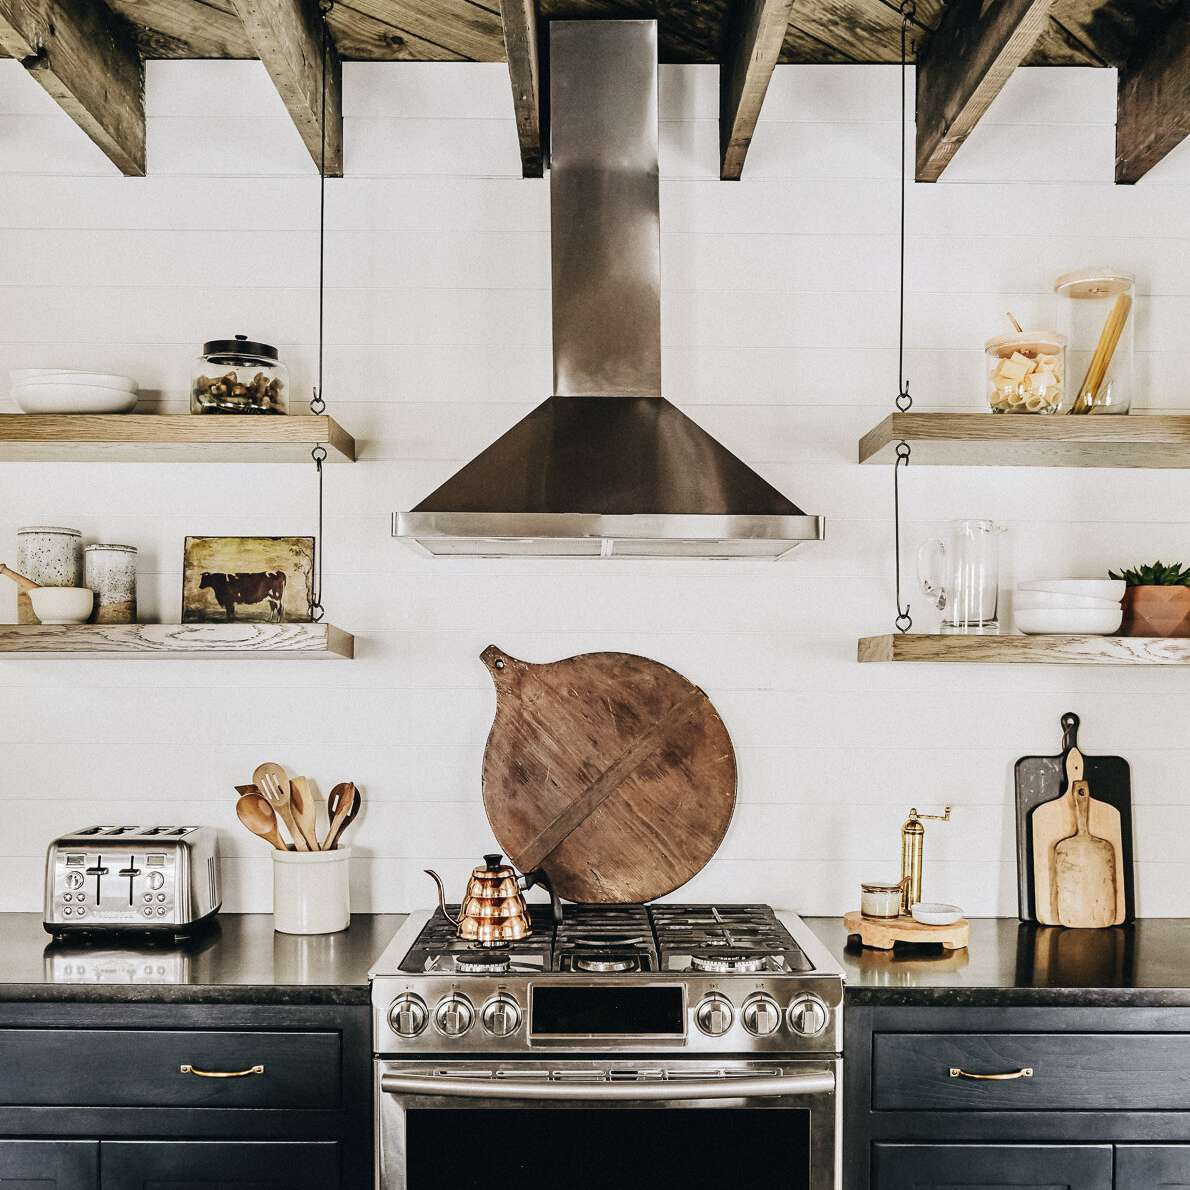 A rustic kitchen with wood-lined ceilings